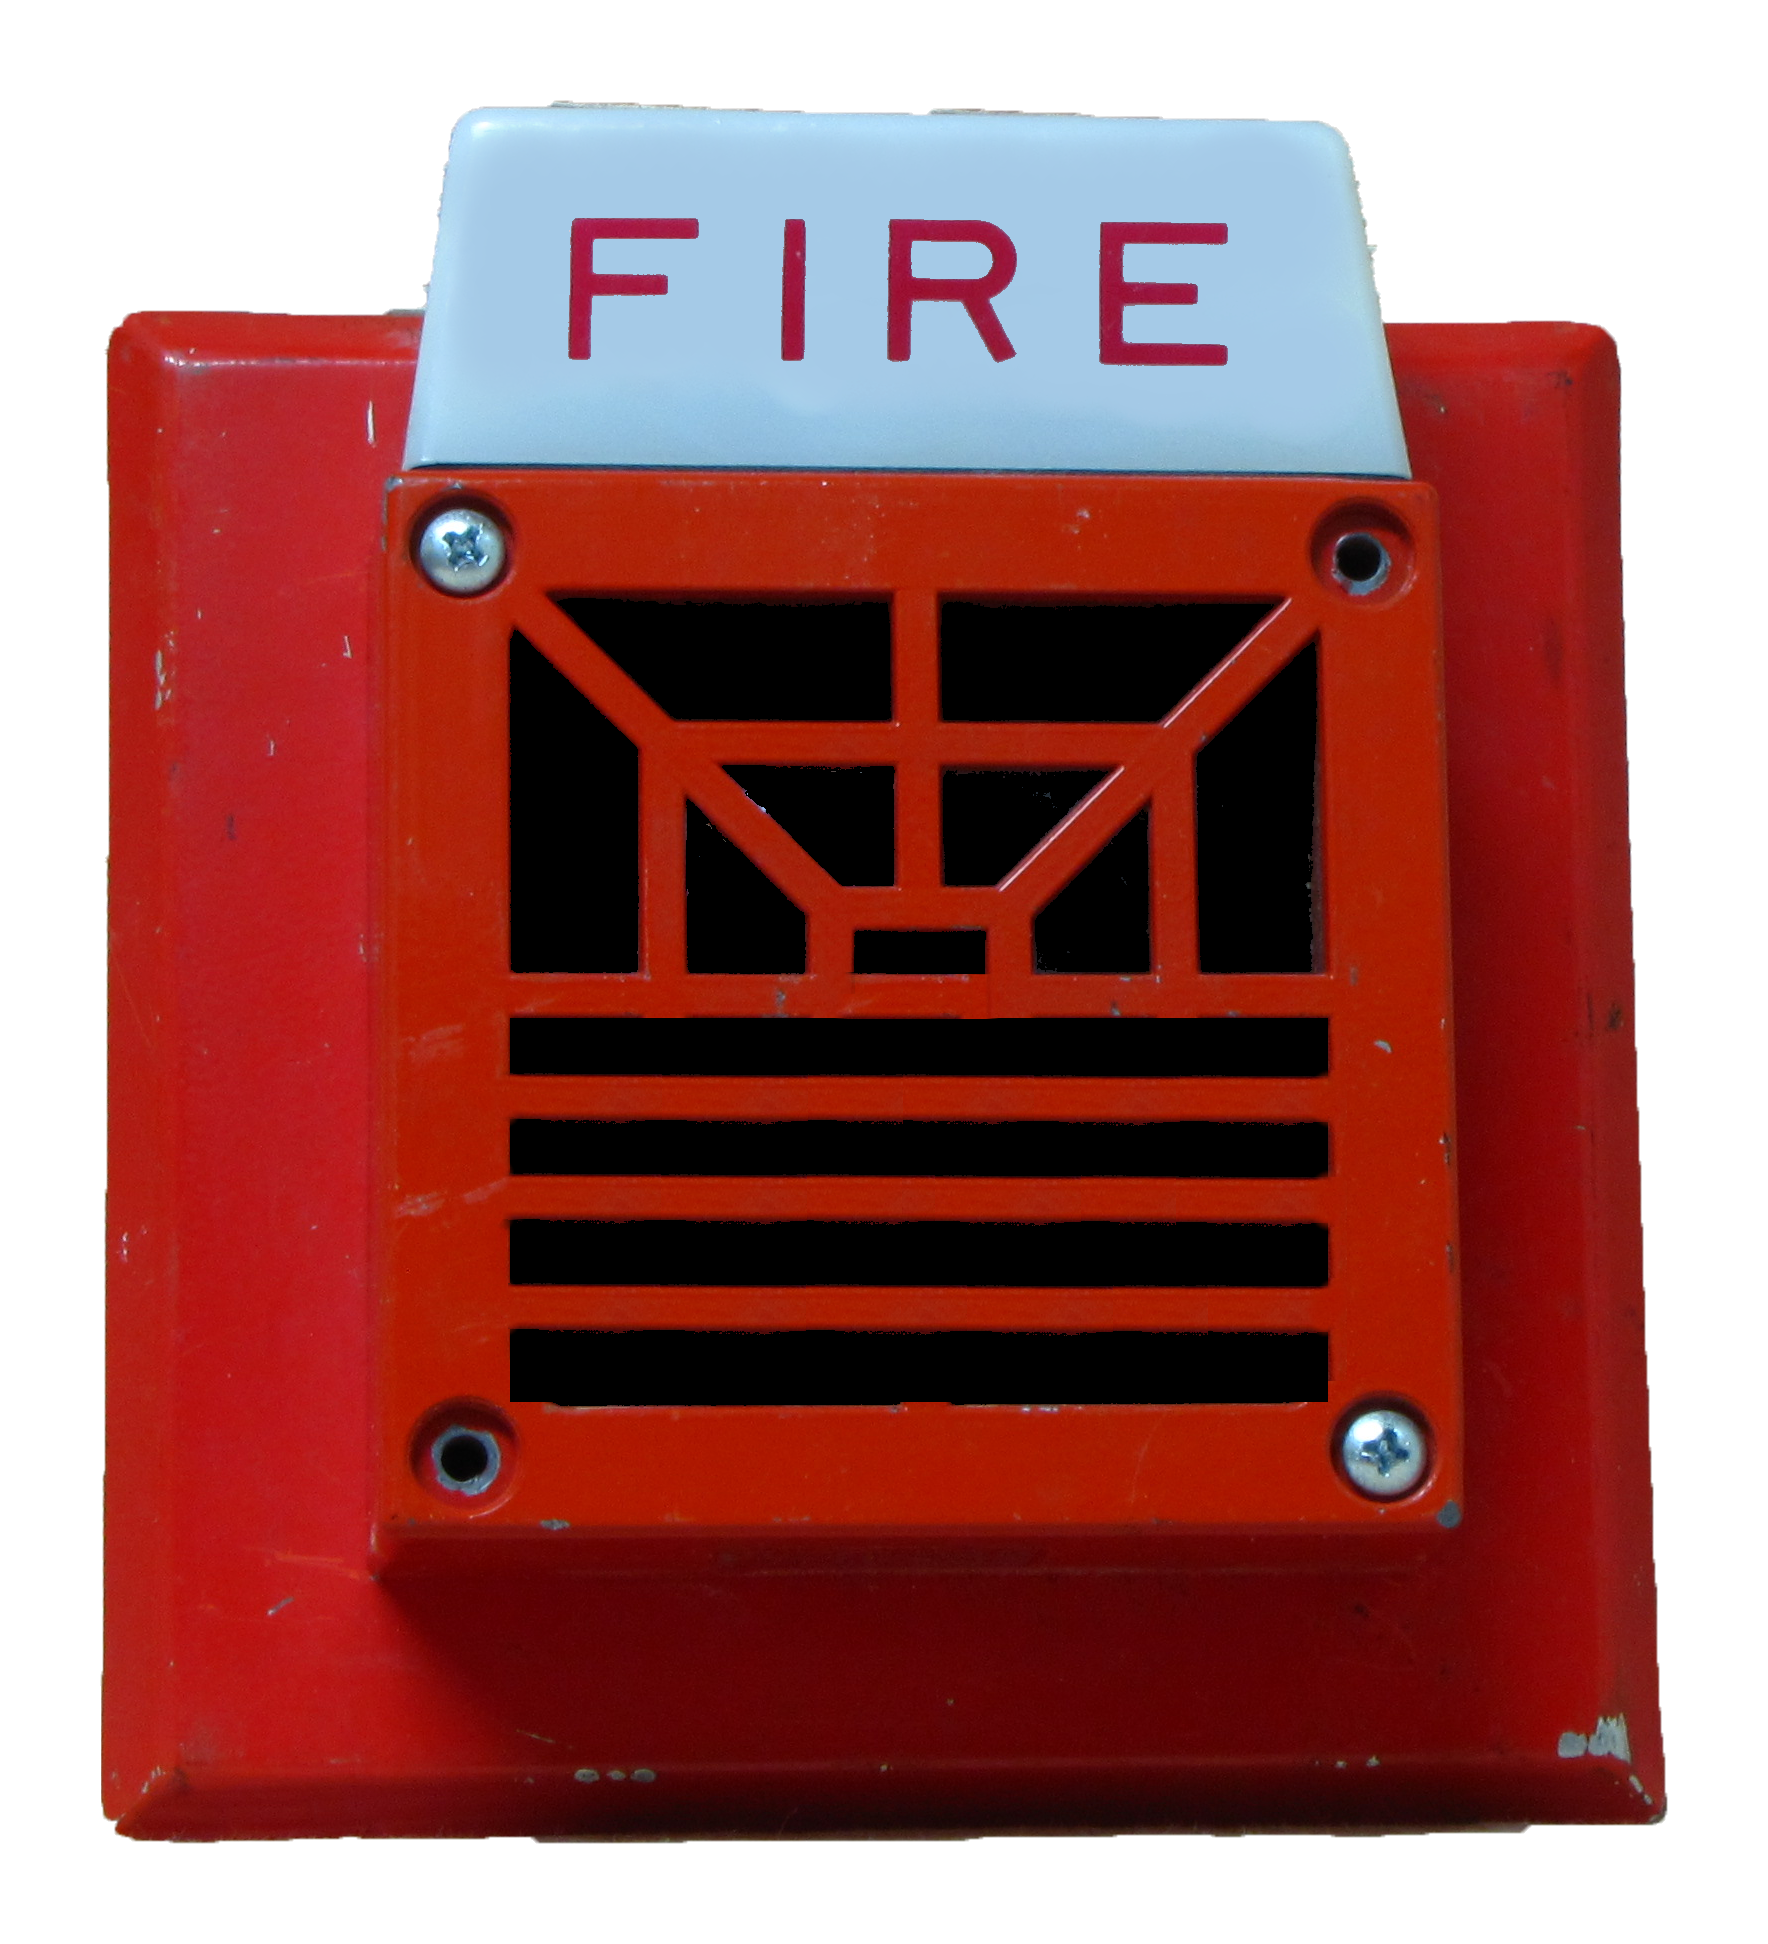 Watch furthermore Fire Alarm Pull Station Simplex furthermore 141173524285 also Page9 besides So There I Am Fast Asleep Staring Down A Fire Alarm. on simplex fire alarm